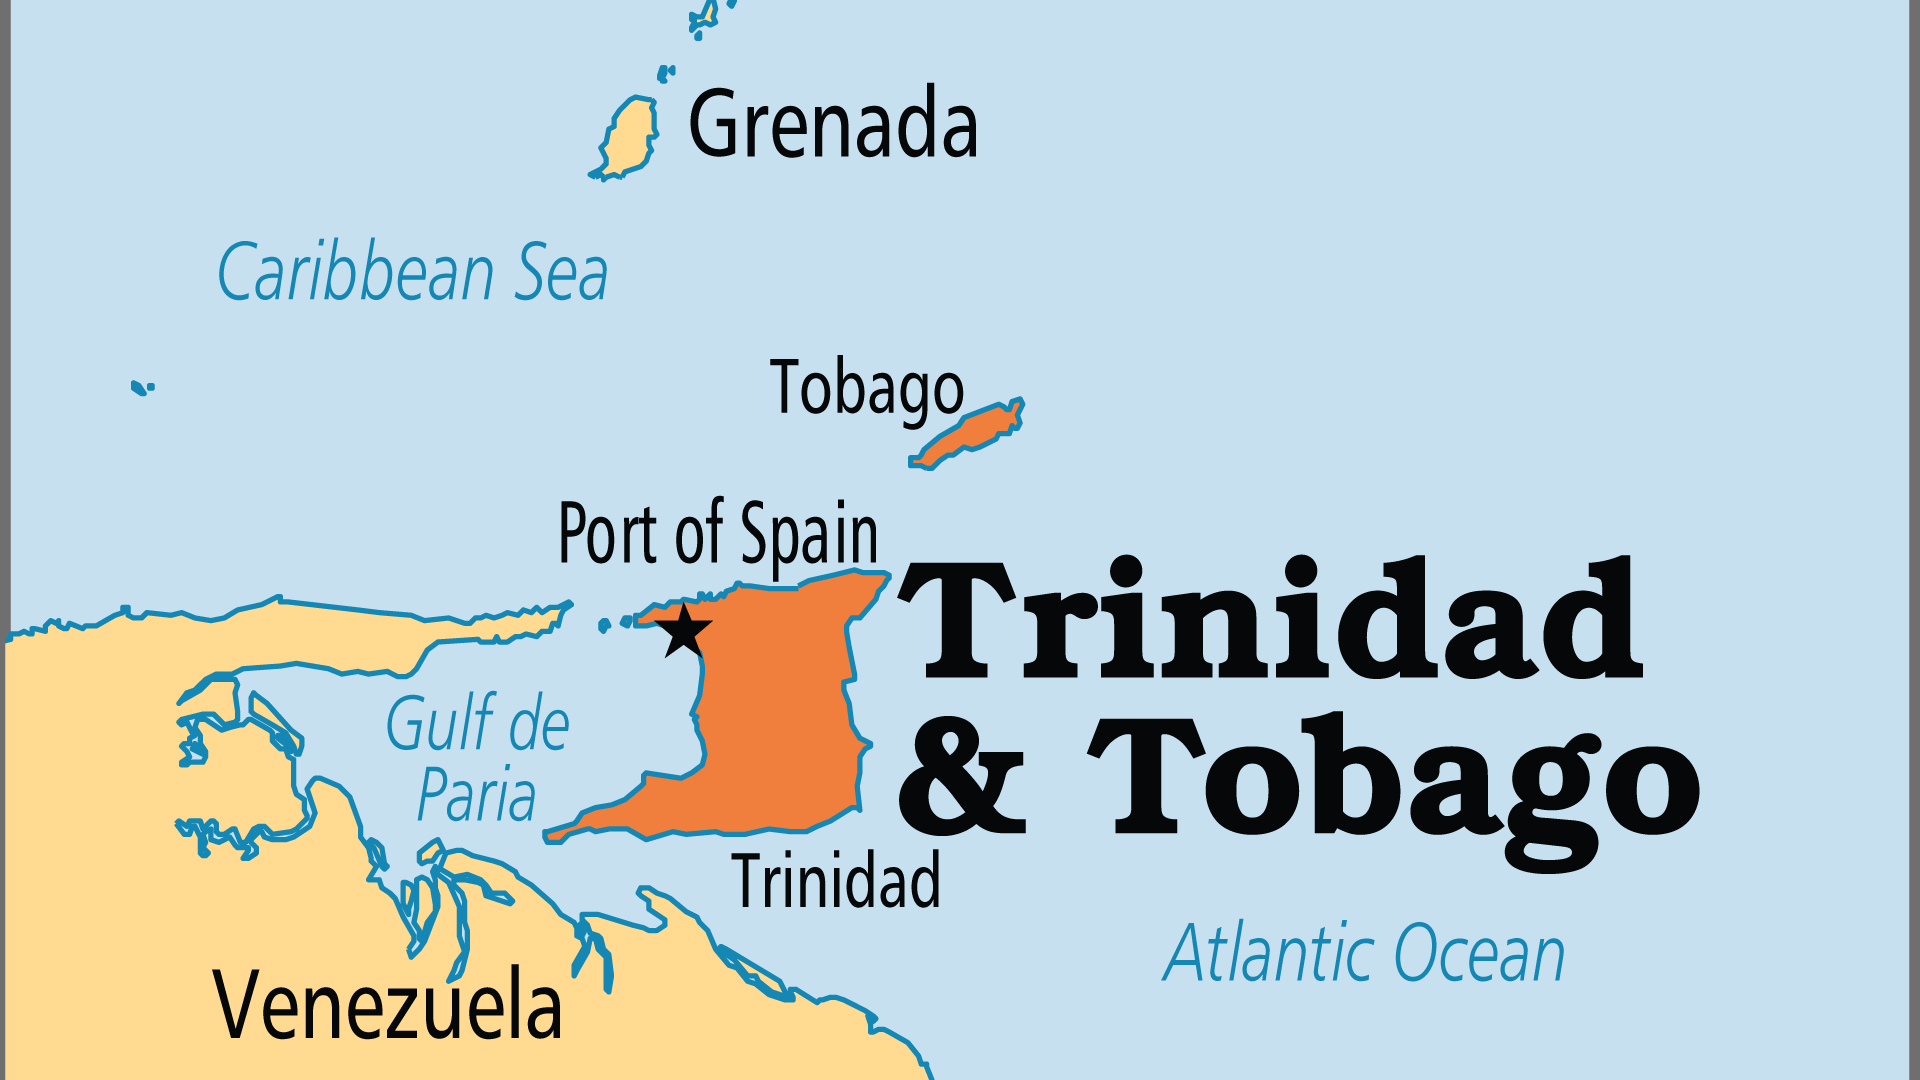 Map of Trinidad & Tobago